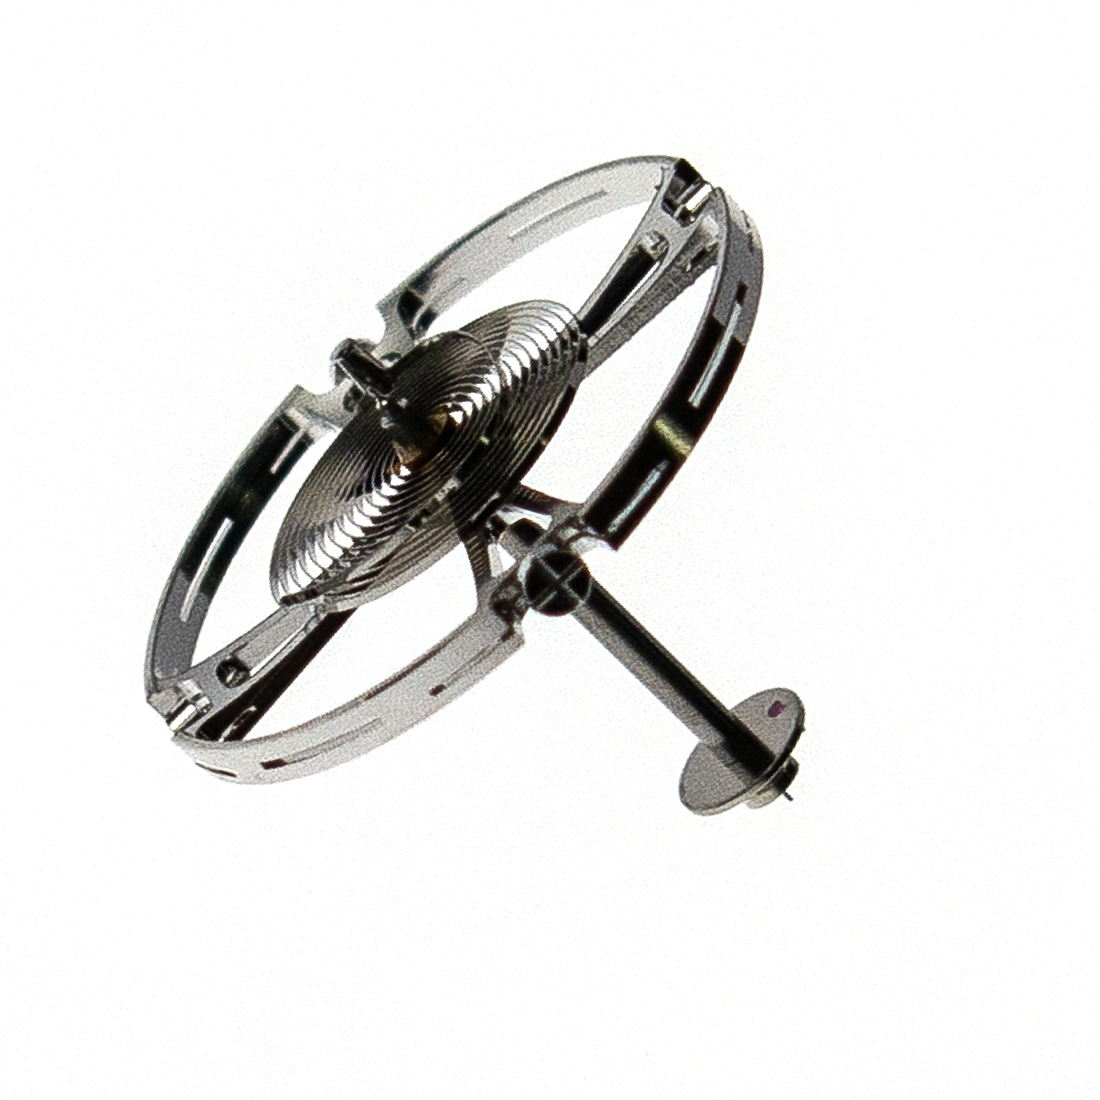 Balance wheel inclined, which has possibly the longest balance arbour ever made for a wristwatch mvt.